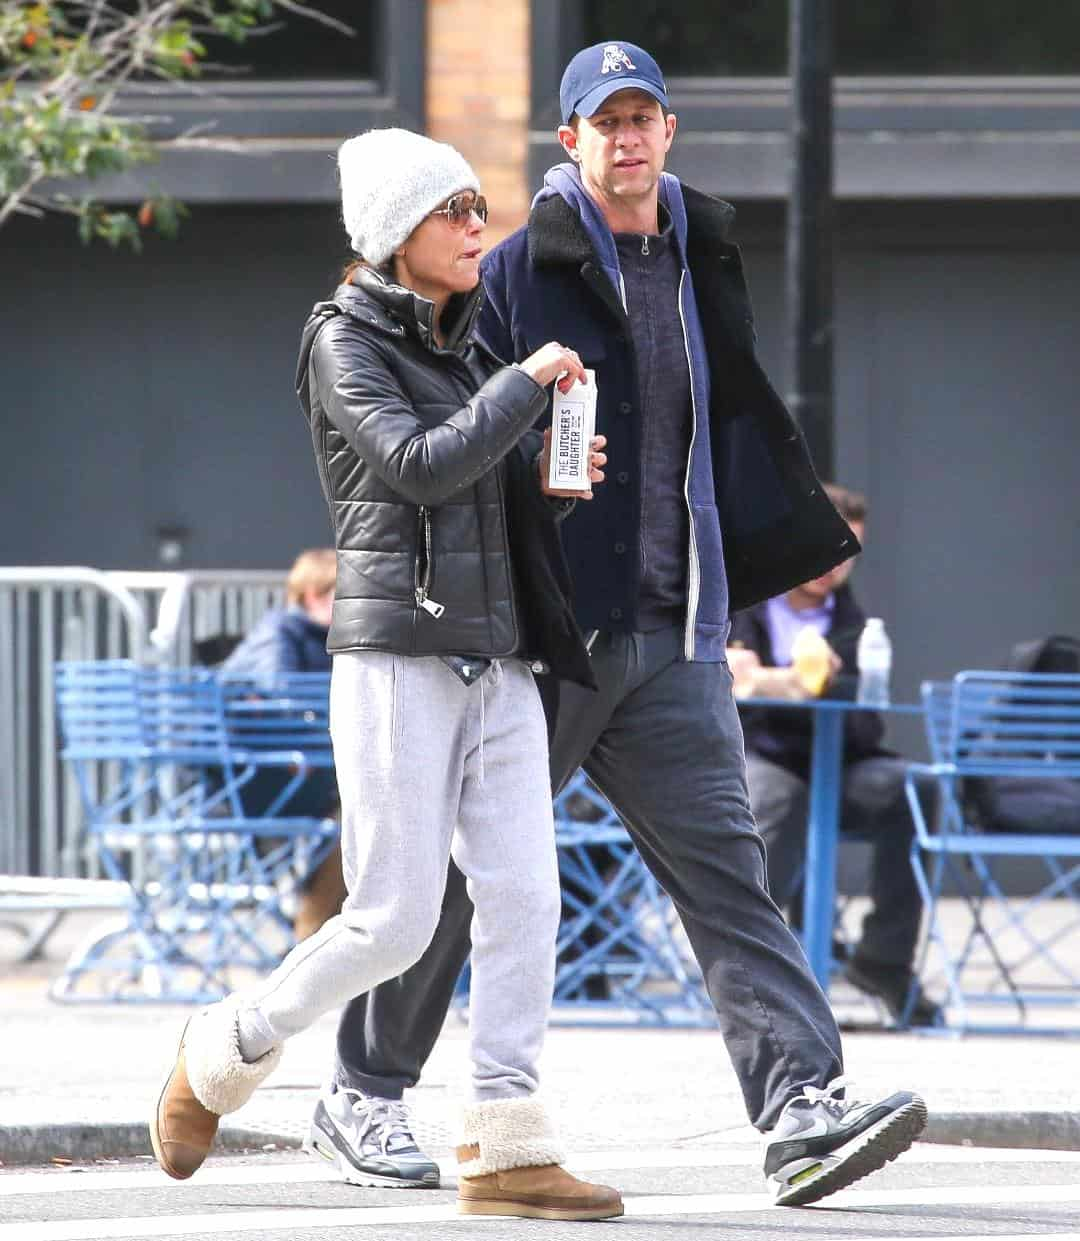 Bethenny Frankel and boyfriend Paul Bernon